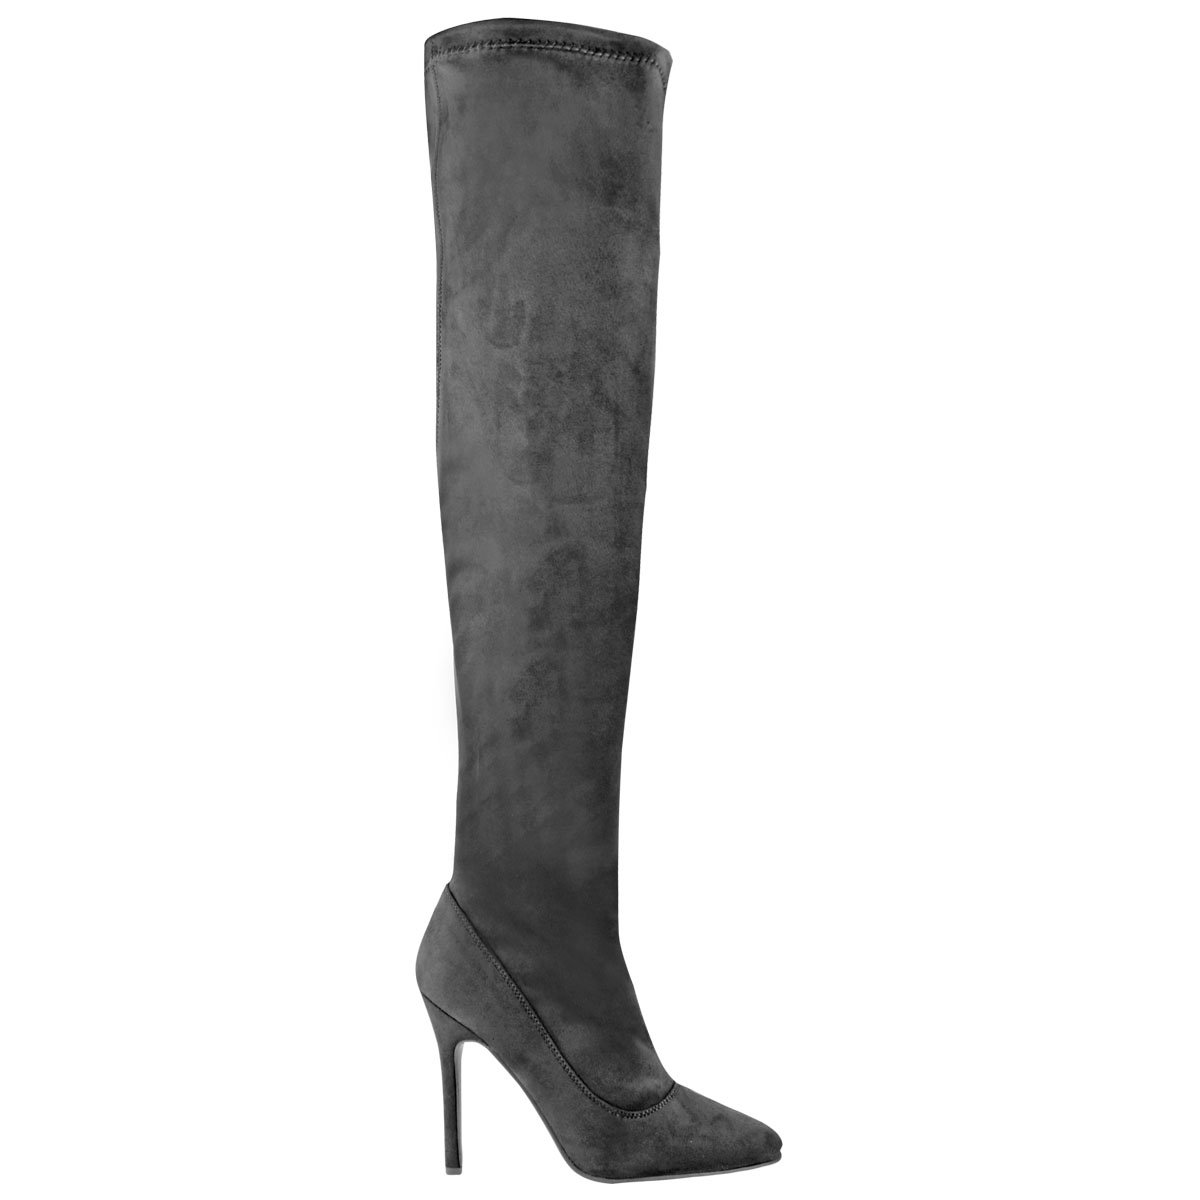 a2c4b2de51 Amazon.com | Fashion Thirsty Womens Thigh High Over The Knee High Heel  Stiletto Boots Party Size | Over-the-Knee